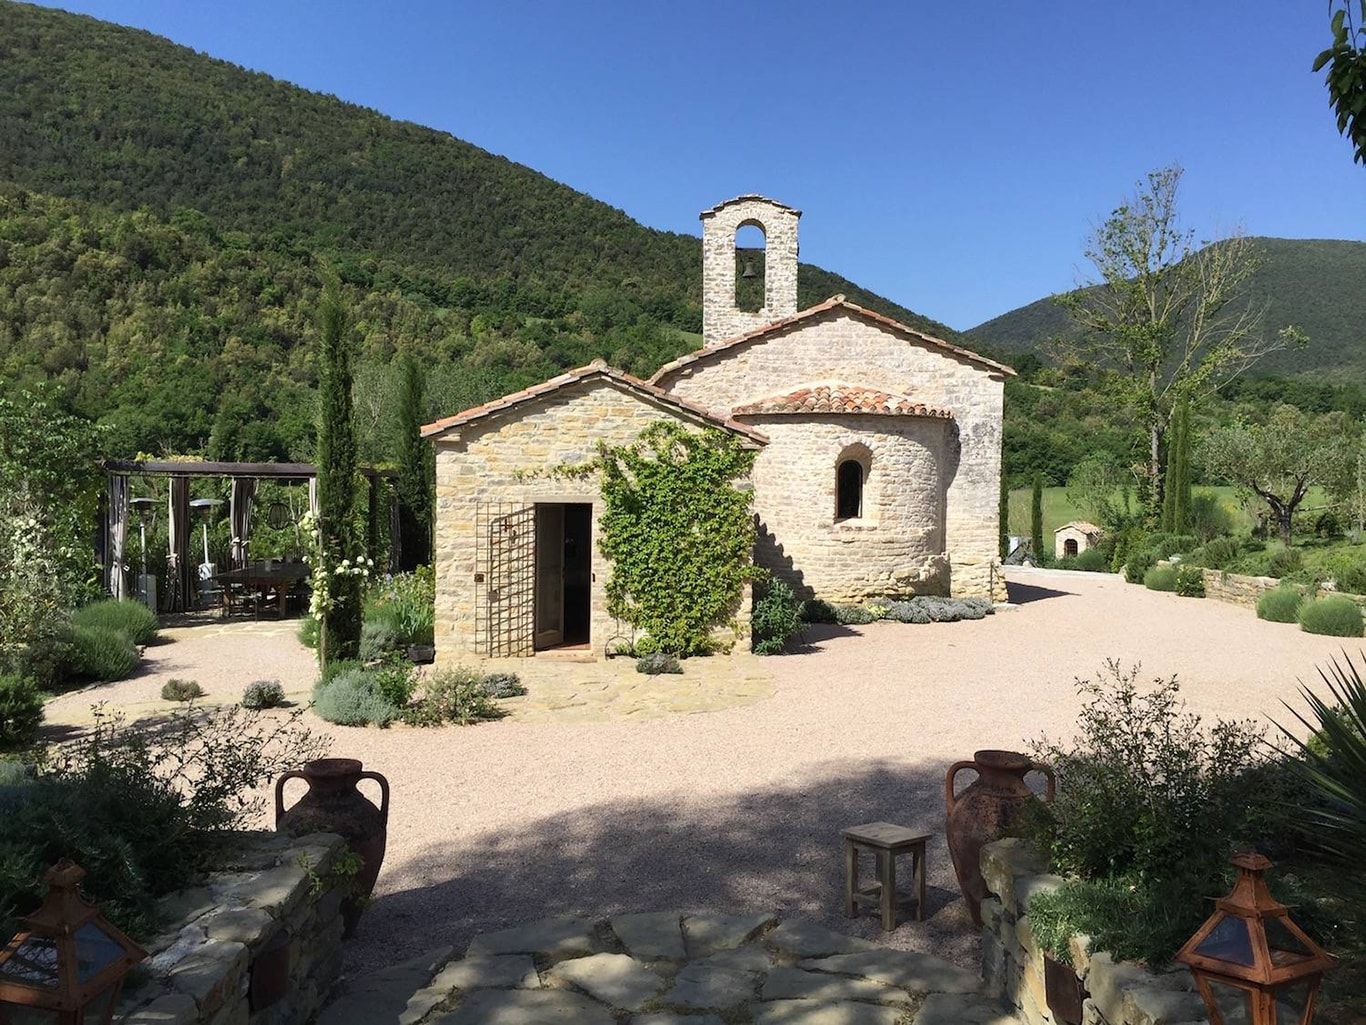 Chiesa del Carmine in Umbria where we stay during our painting holidays in Italy